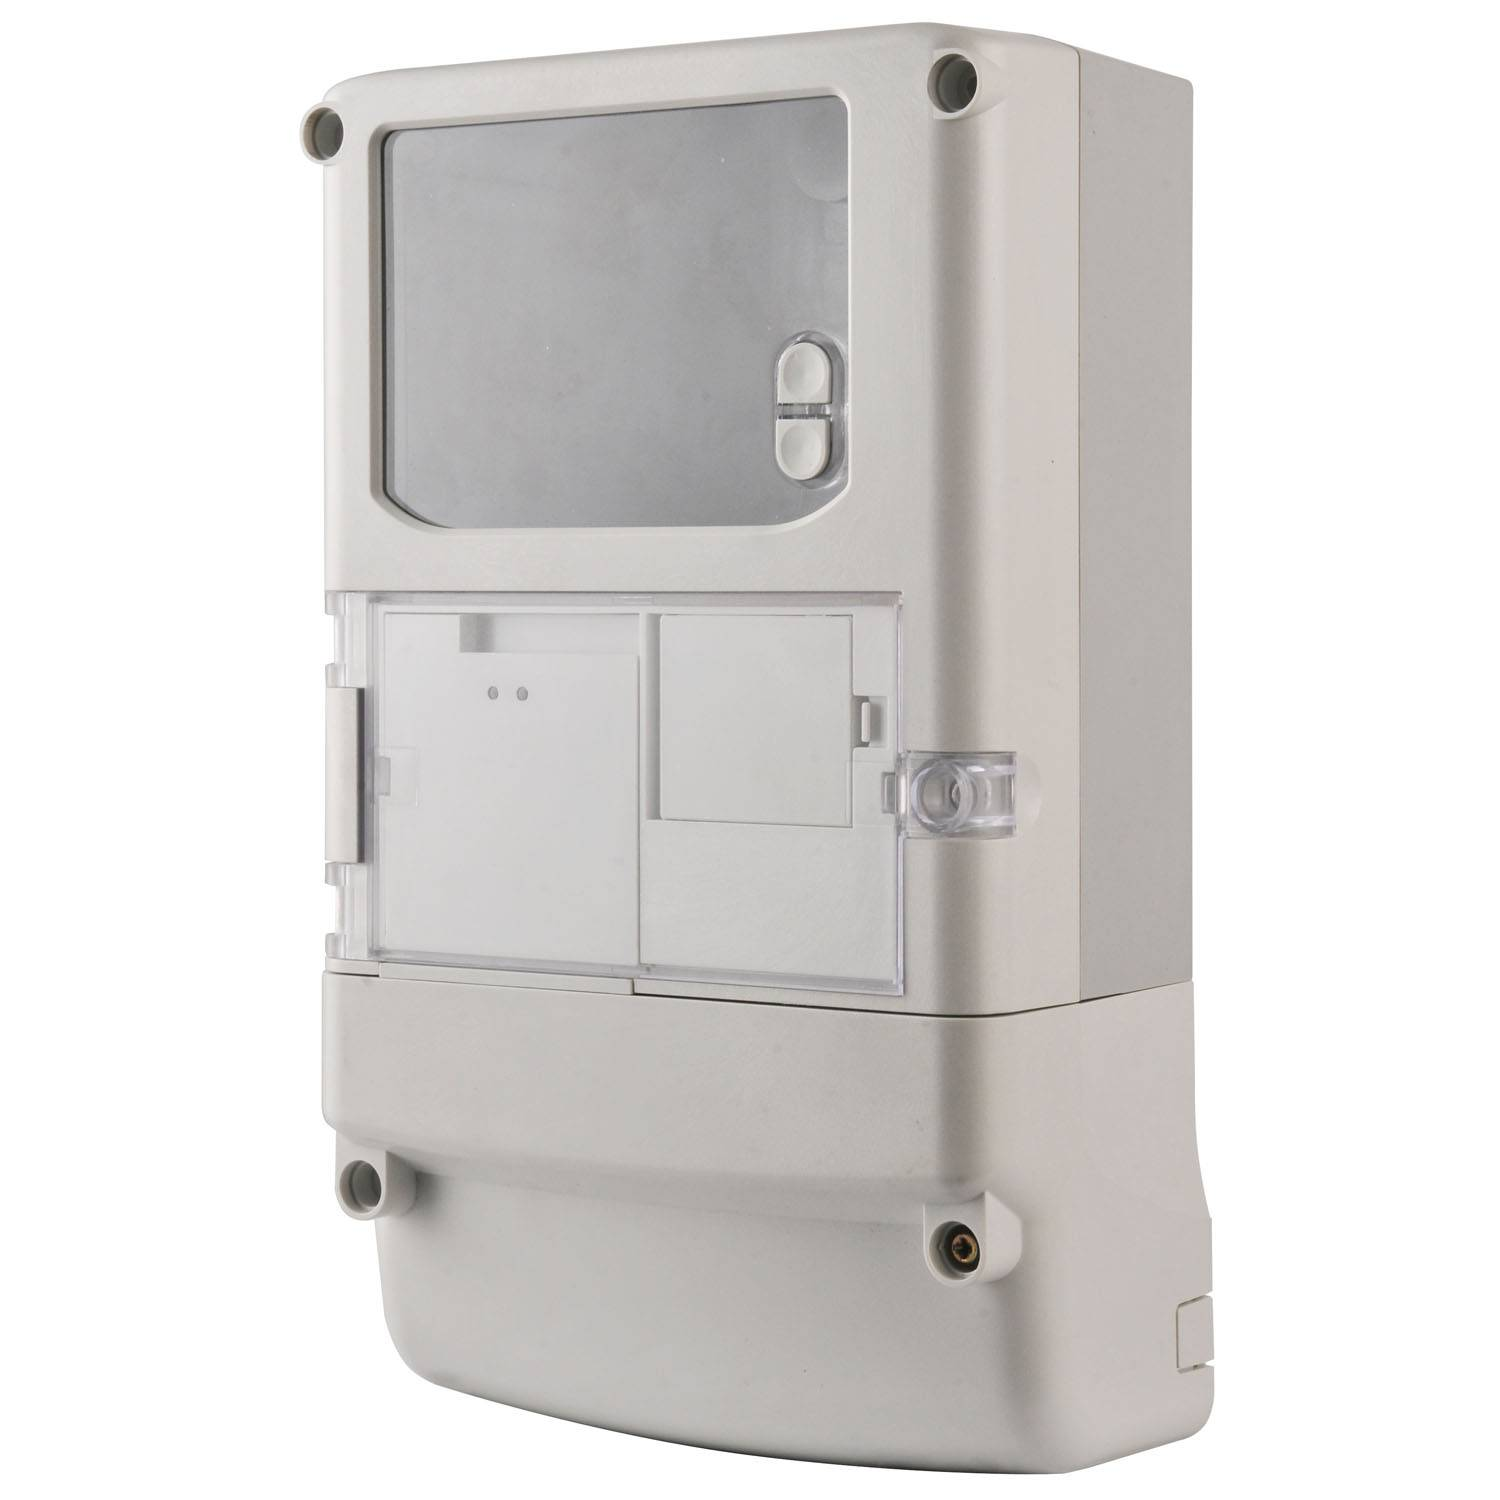 Three Phase Electric Enclosure Wall Mount (DTSD-3060-7) high grade